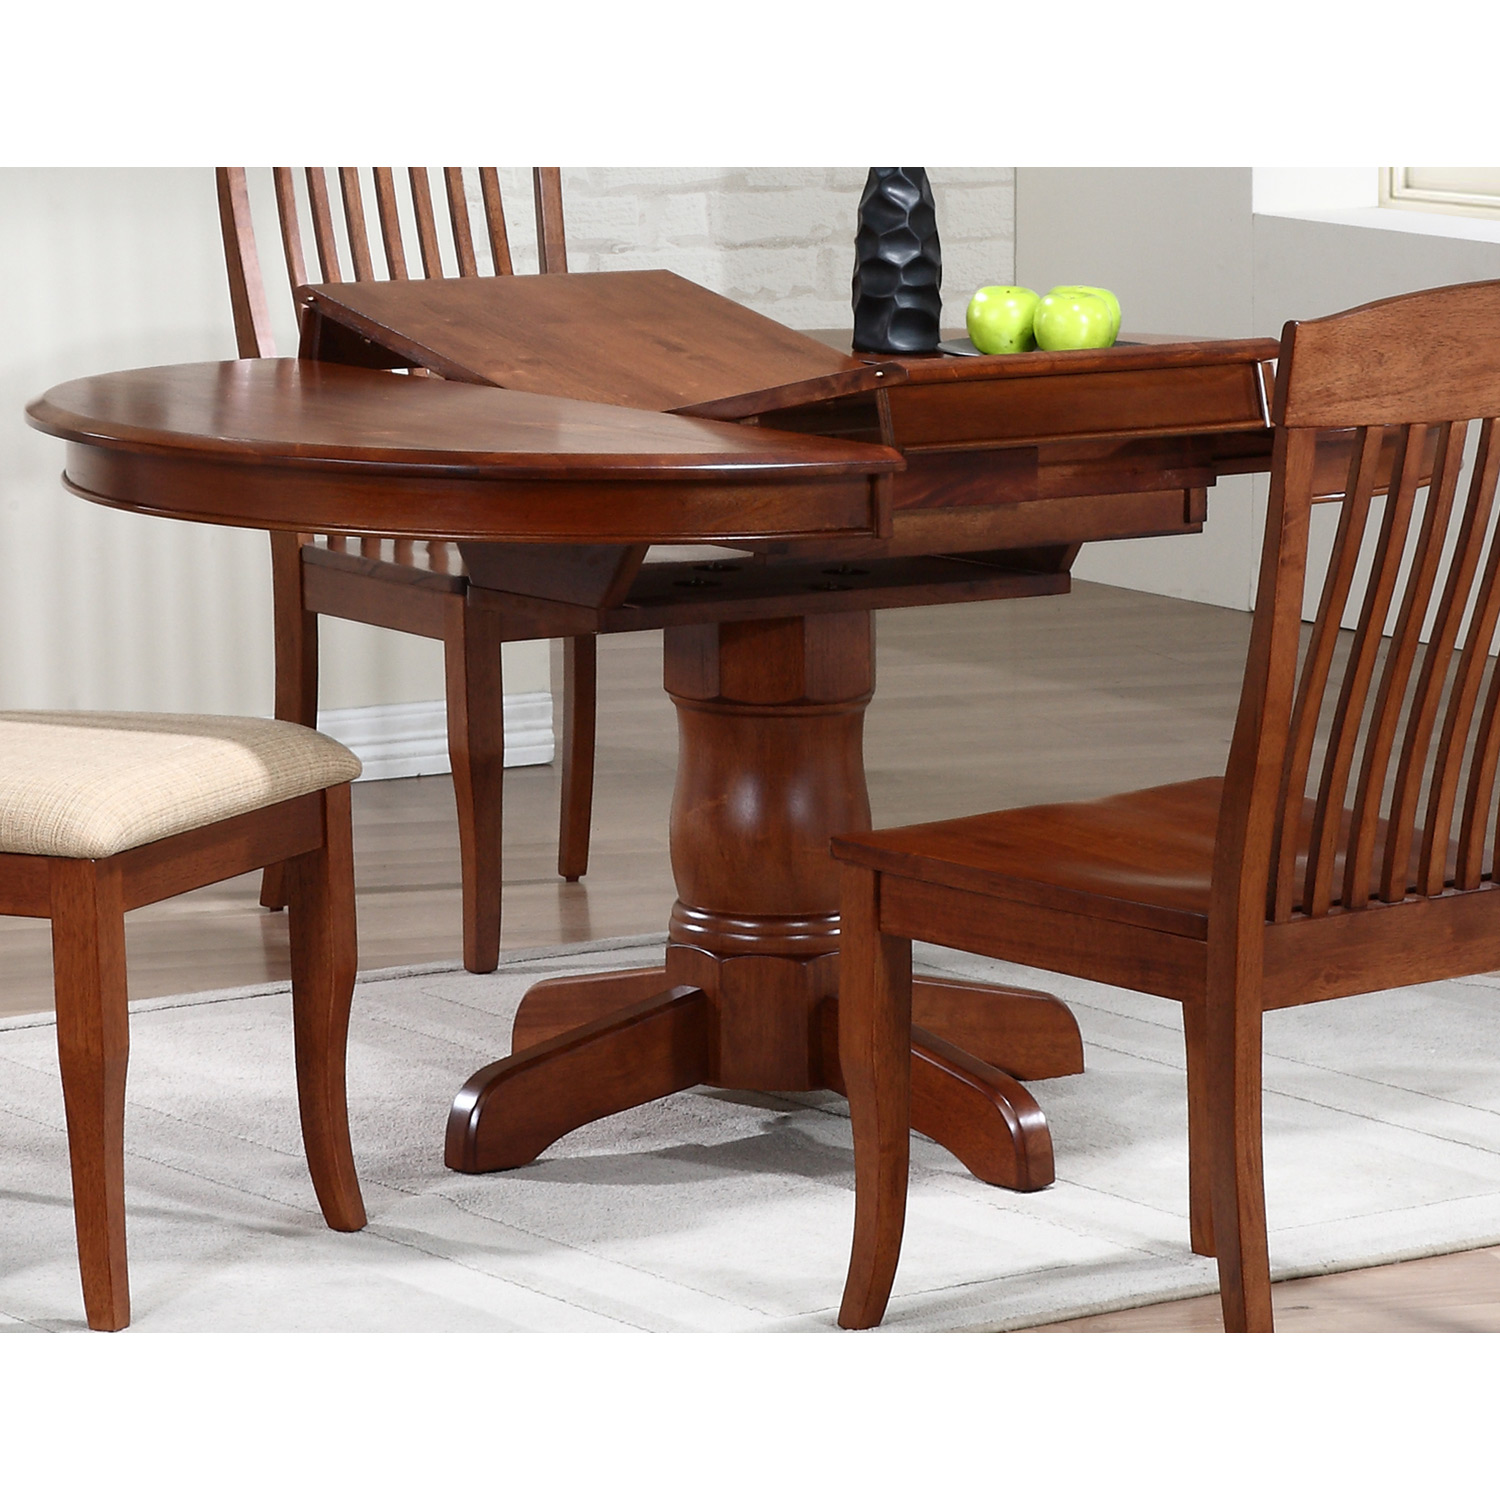 Cyrus Extending Dining Table - Round Top, Pedestal Base, Cinnamon - ICON-RD-42-DT-CN